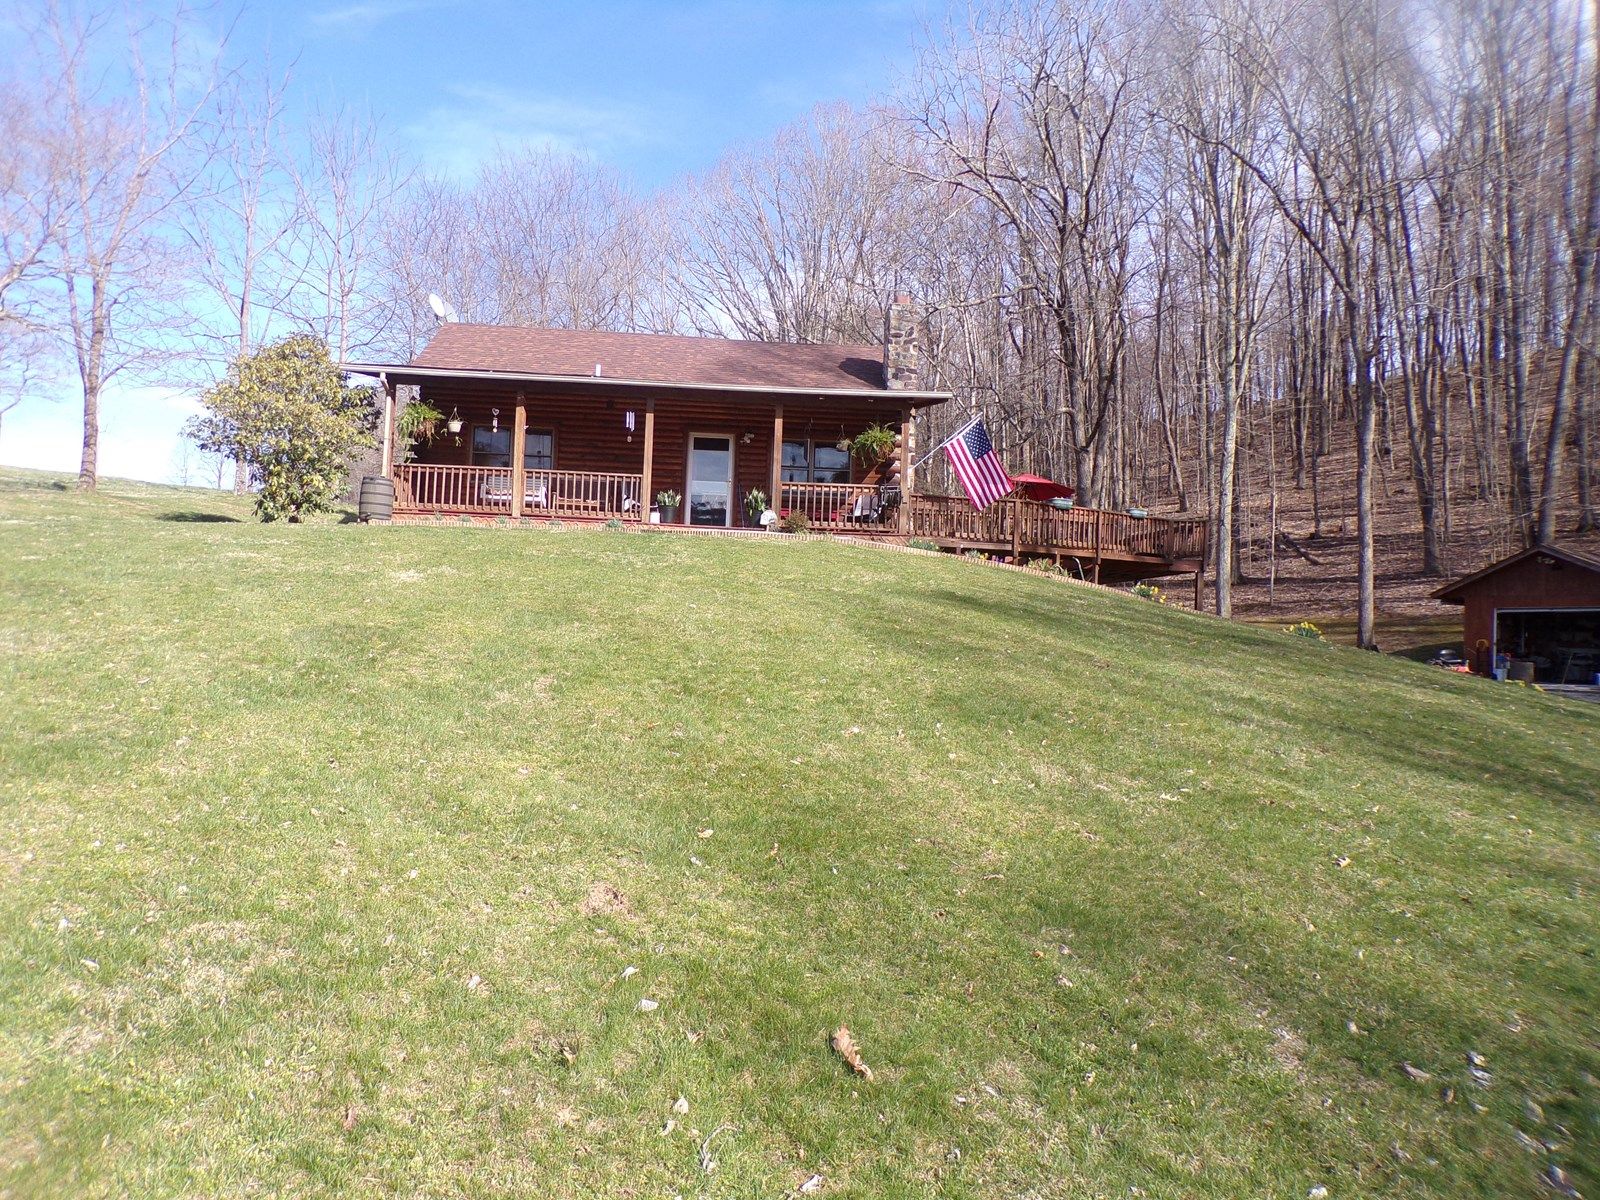 Log home for sale with 3 bedrooms and 2 baths